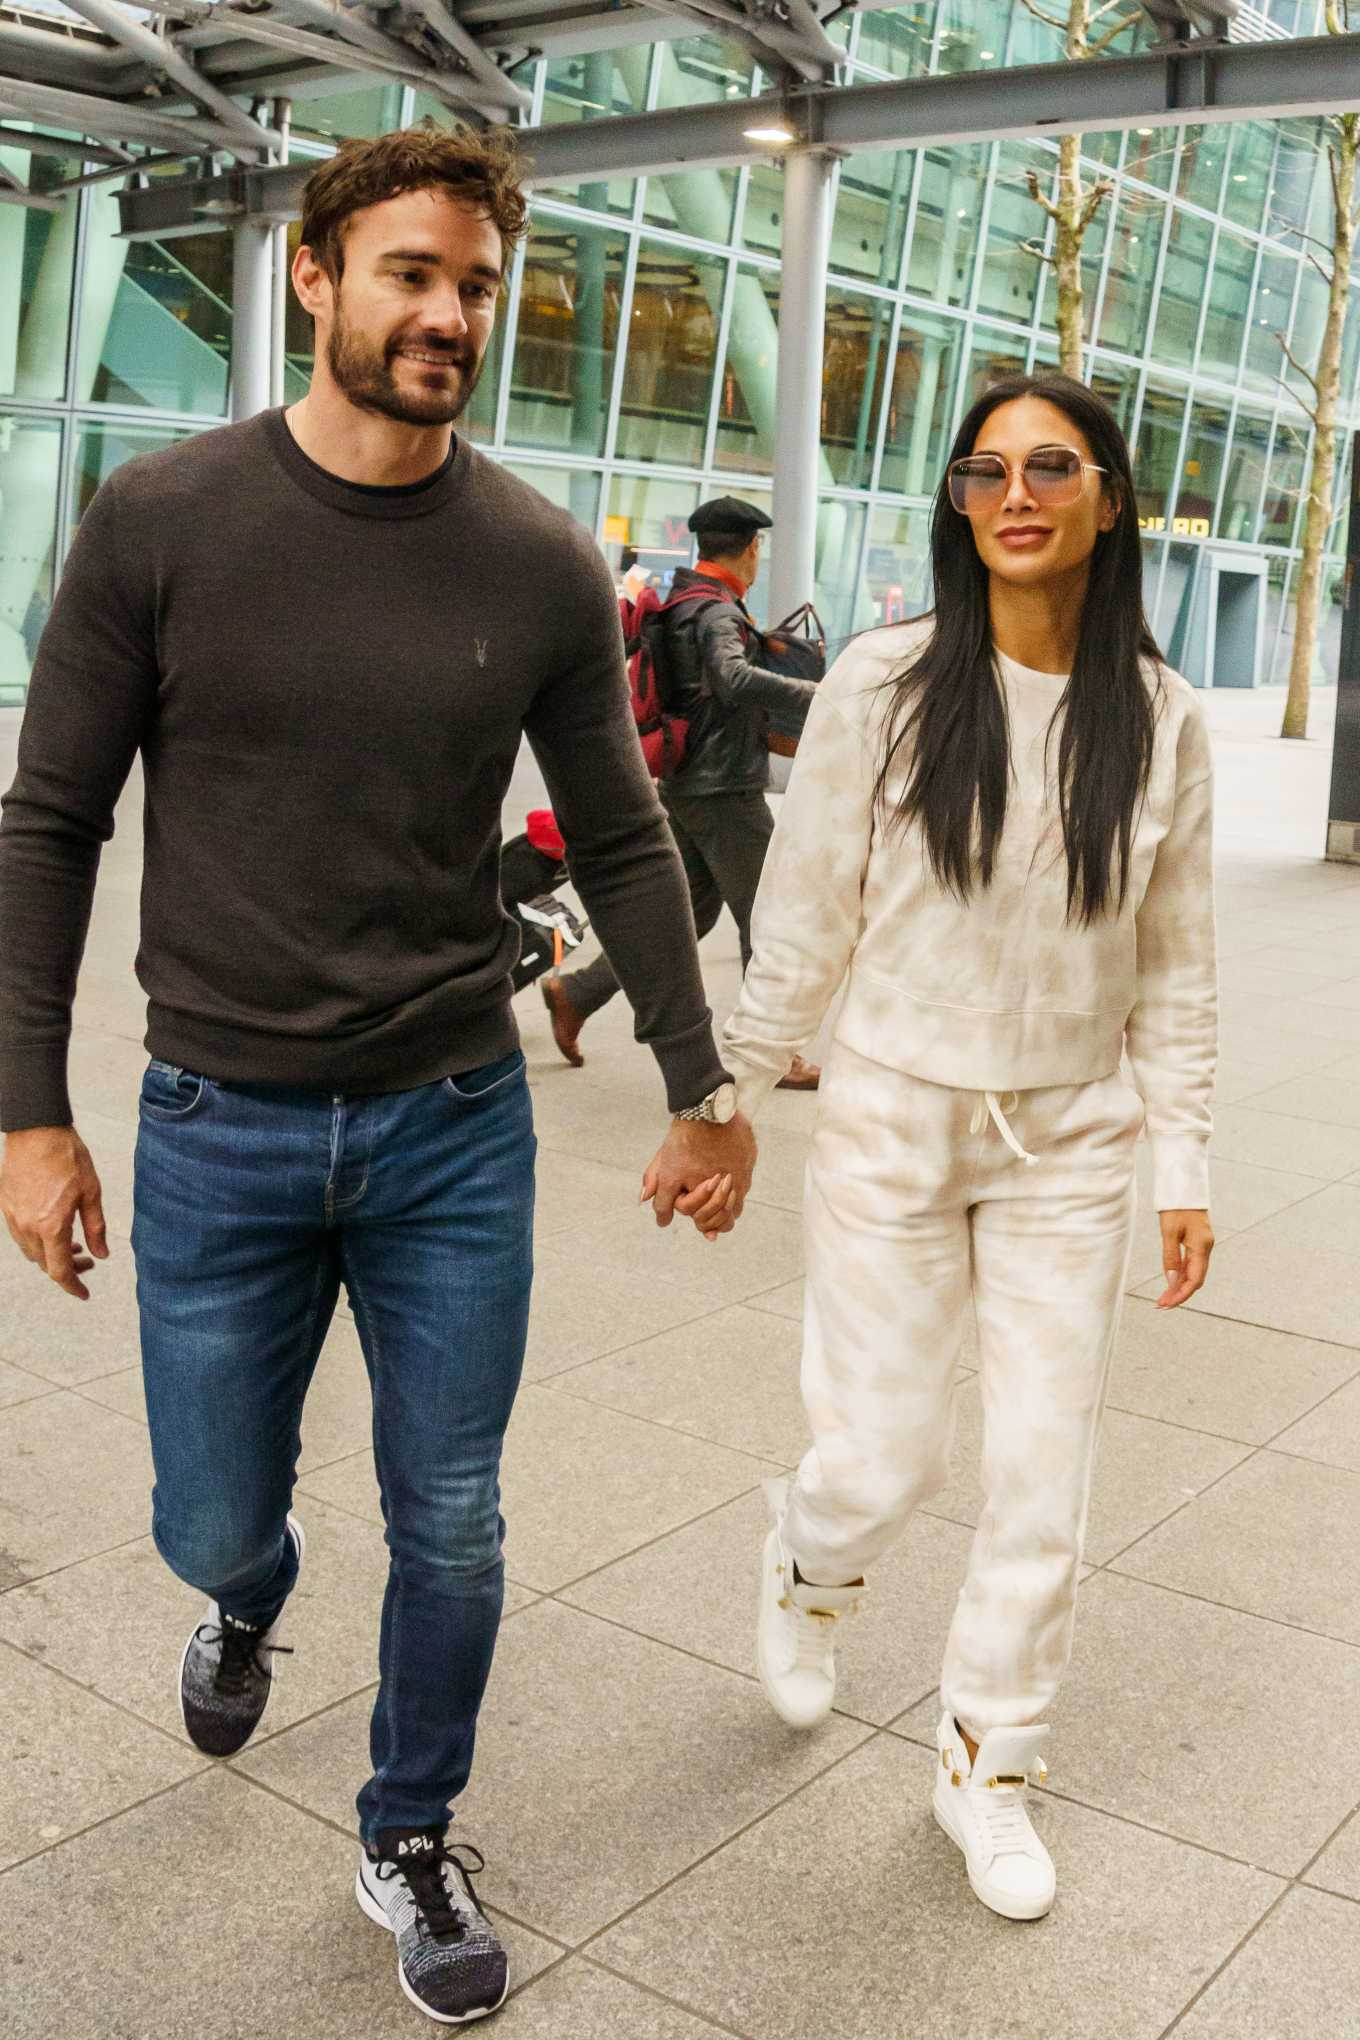 Nicole Scherzinger and boyfriend Thom Evans put on a loved up display as they arrive hand in hand at Heathrow after Los Angeles break